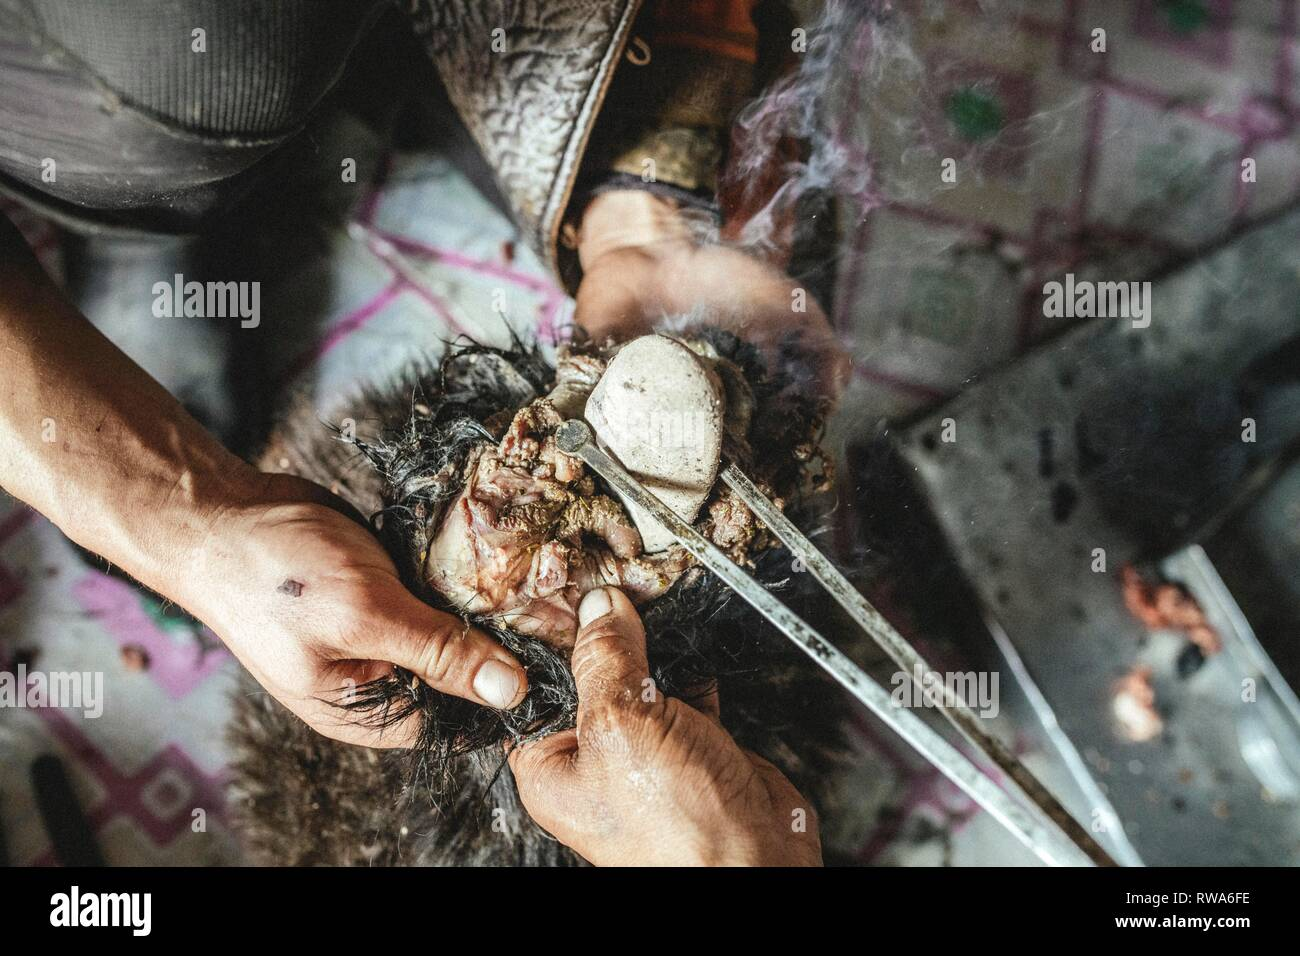 Hot stones are filled into the body with tongs, traditional cooking of a goat with hot stones in its belly - Stock Image